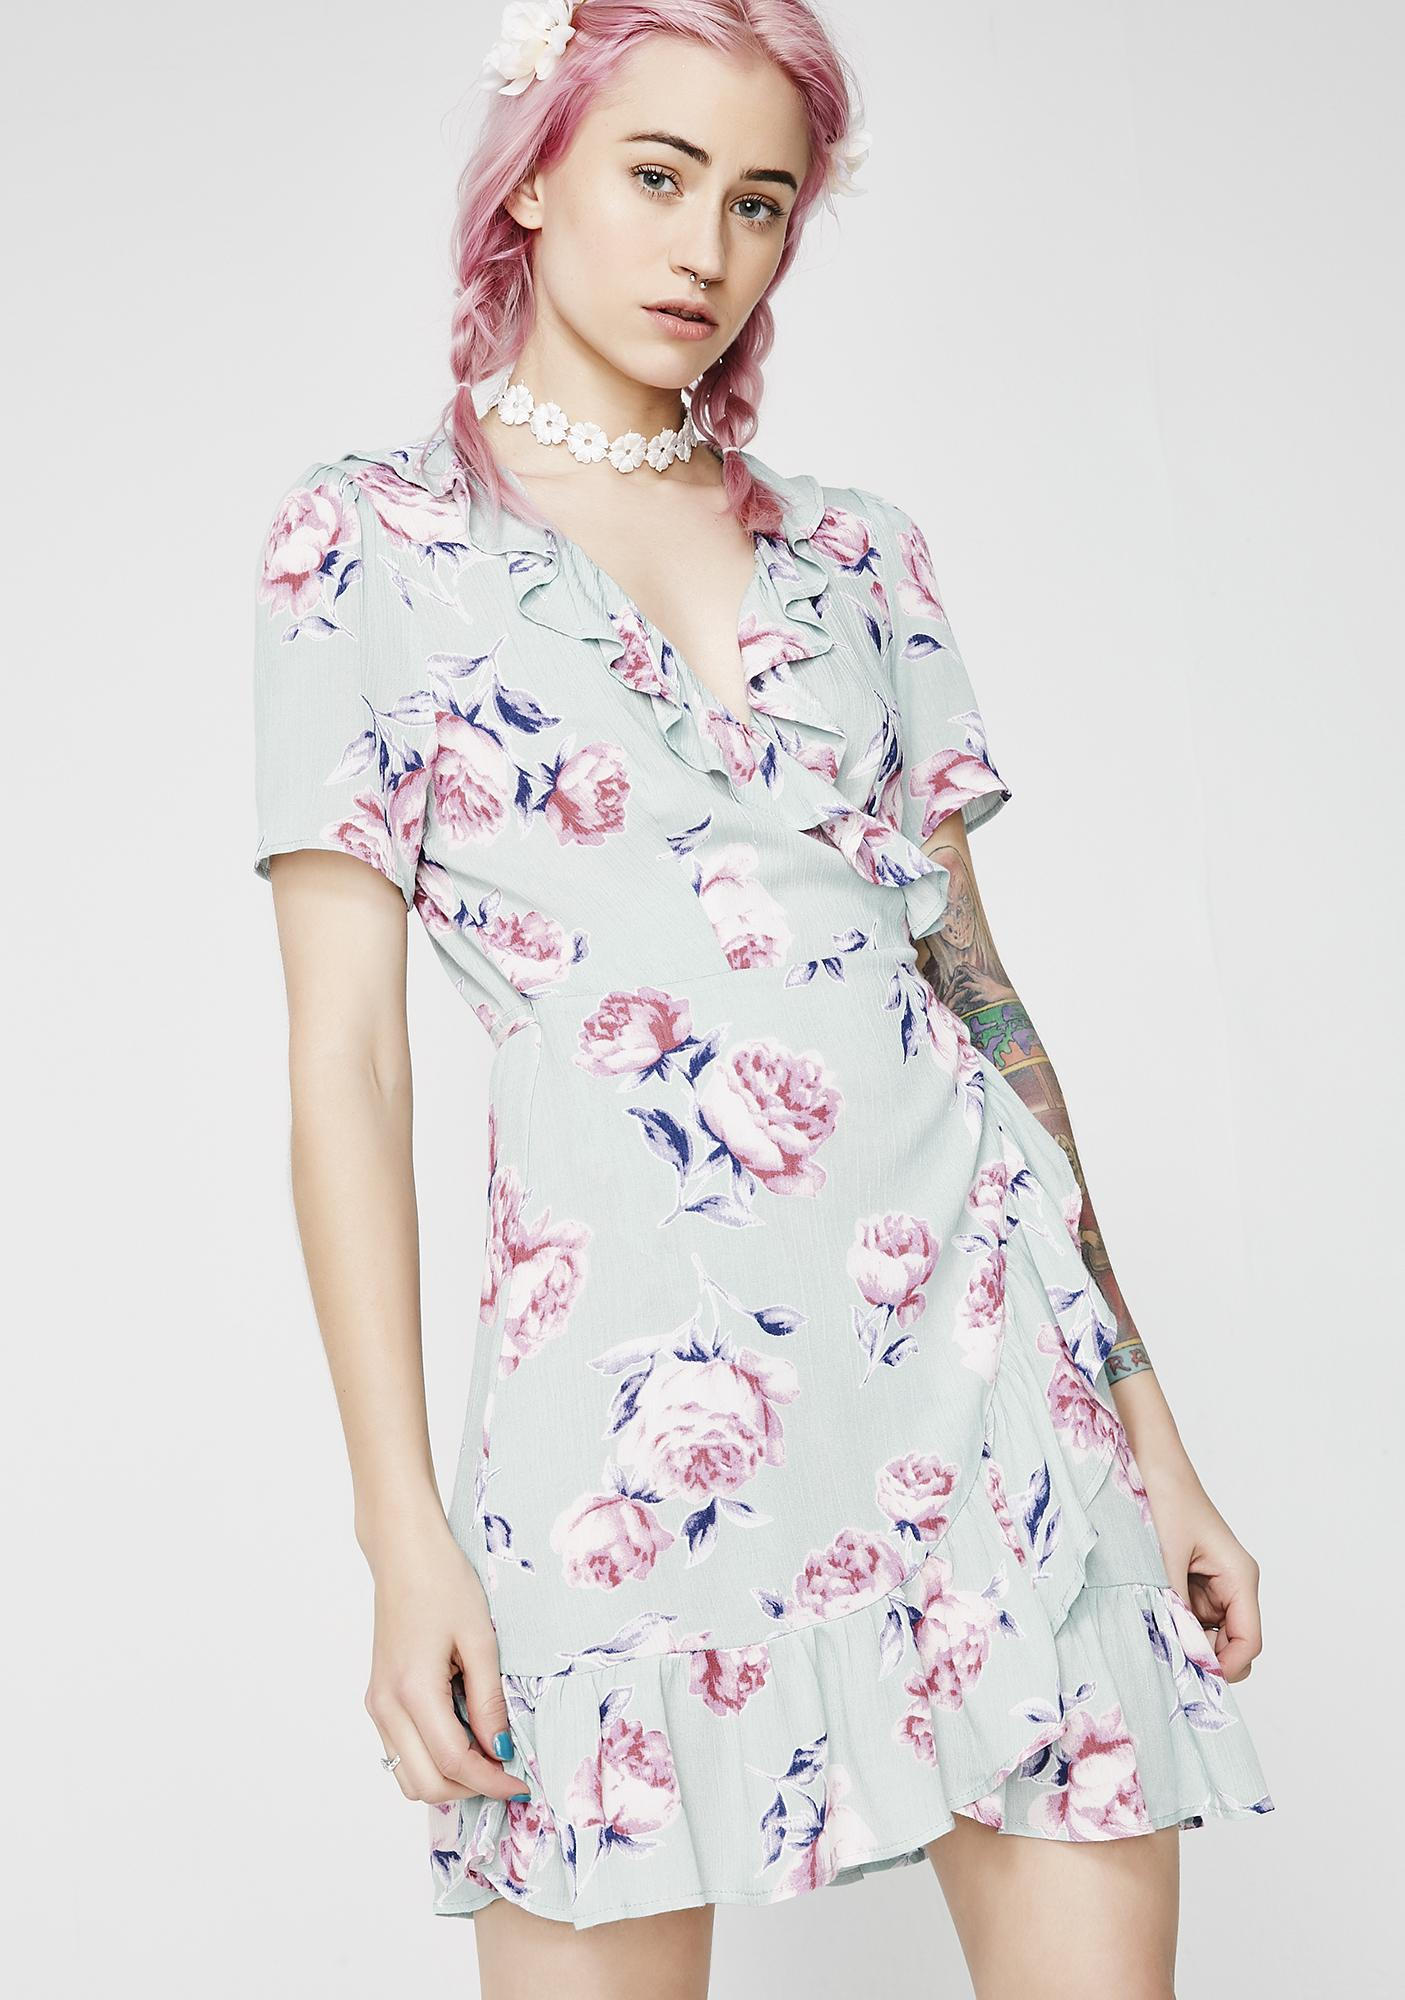 Pretty Lil' Thang Floral Dress